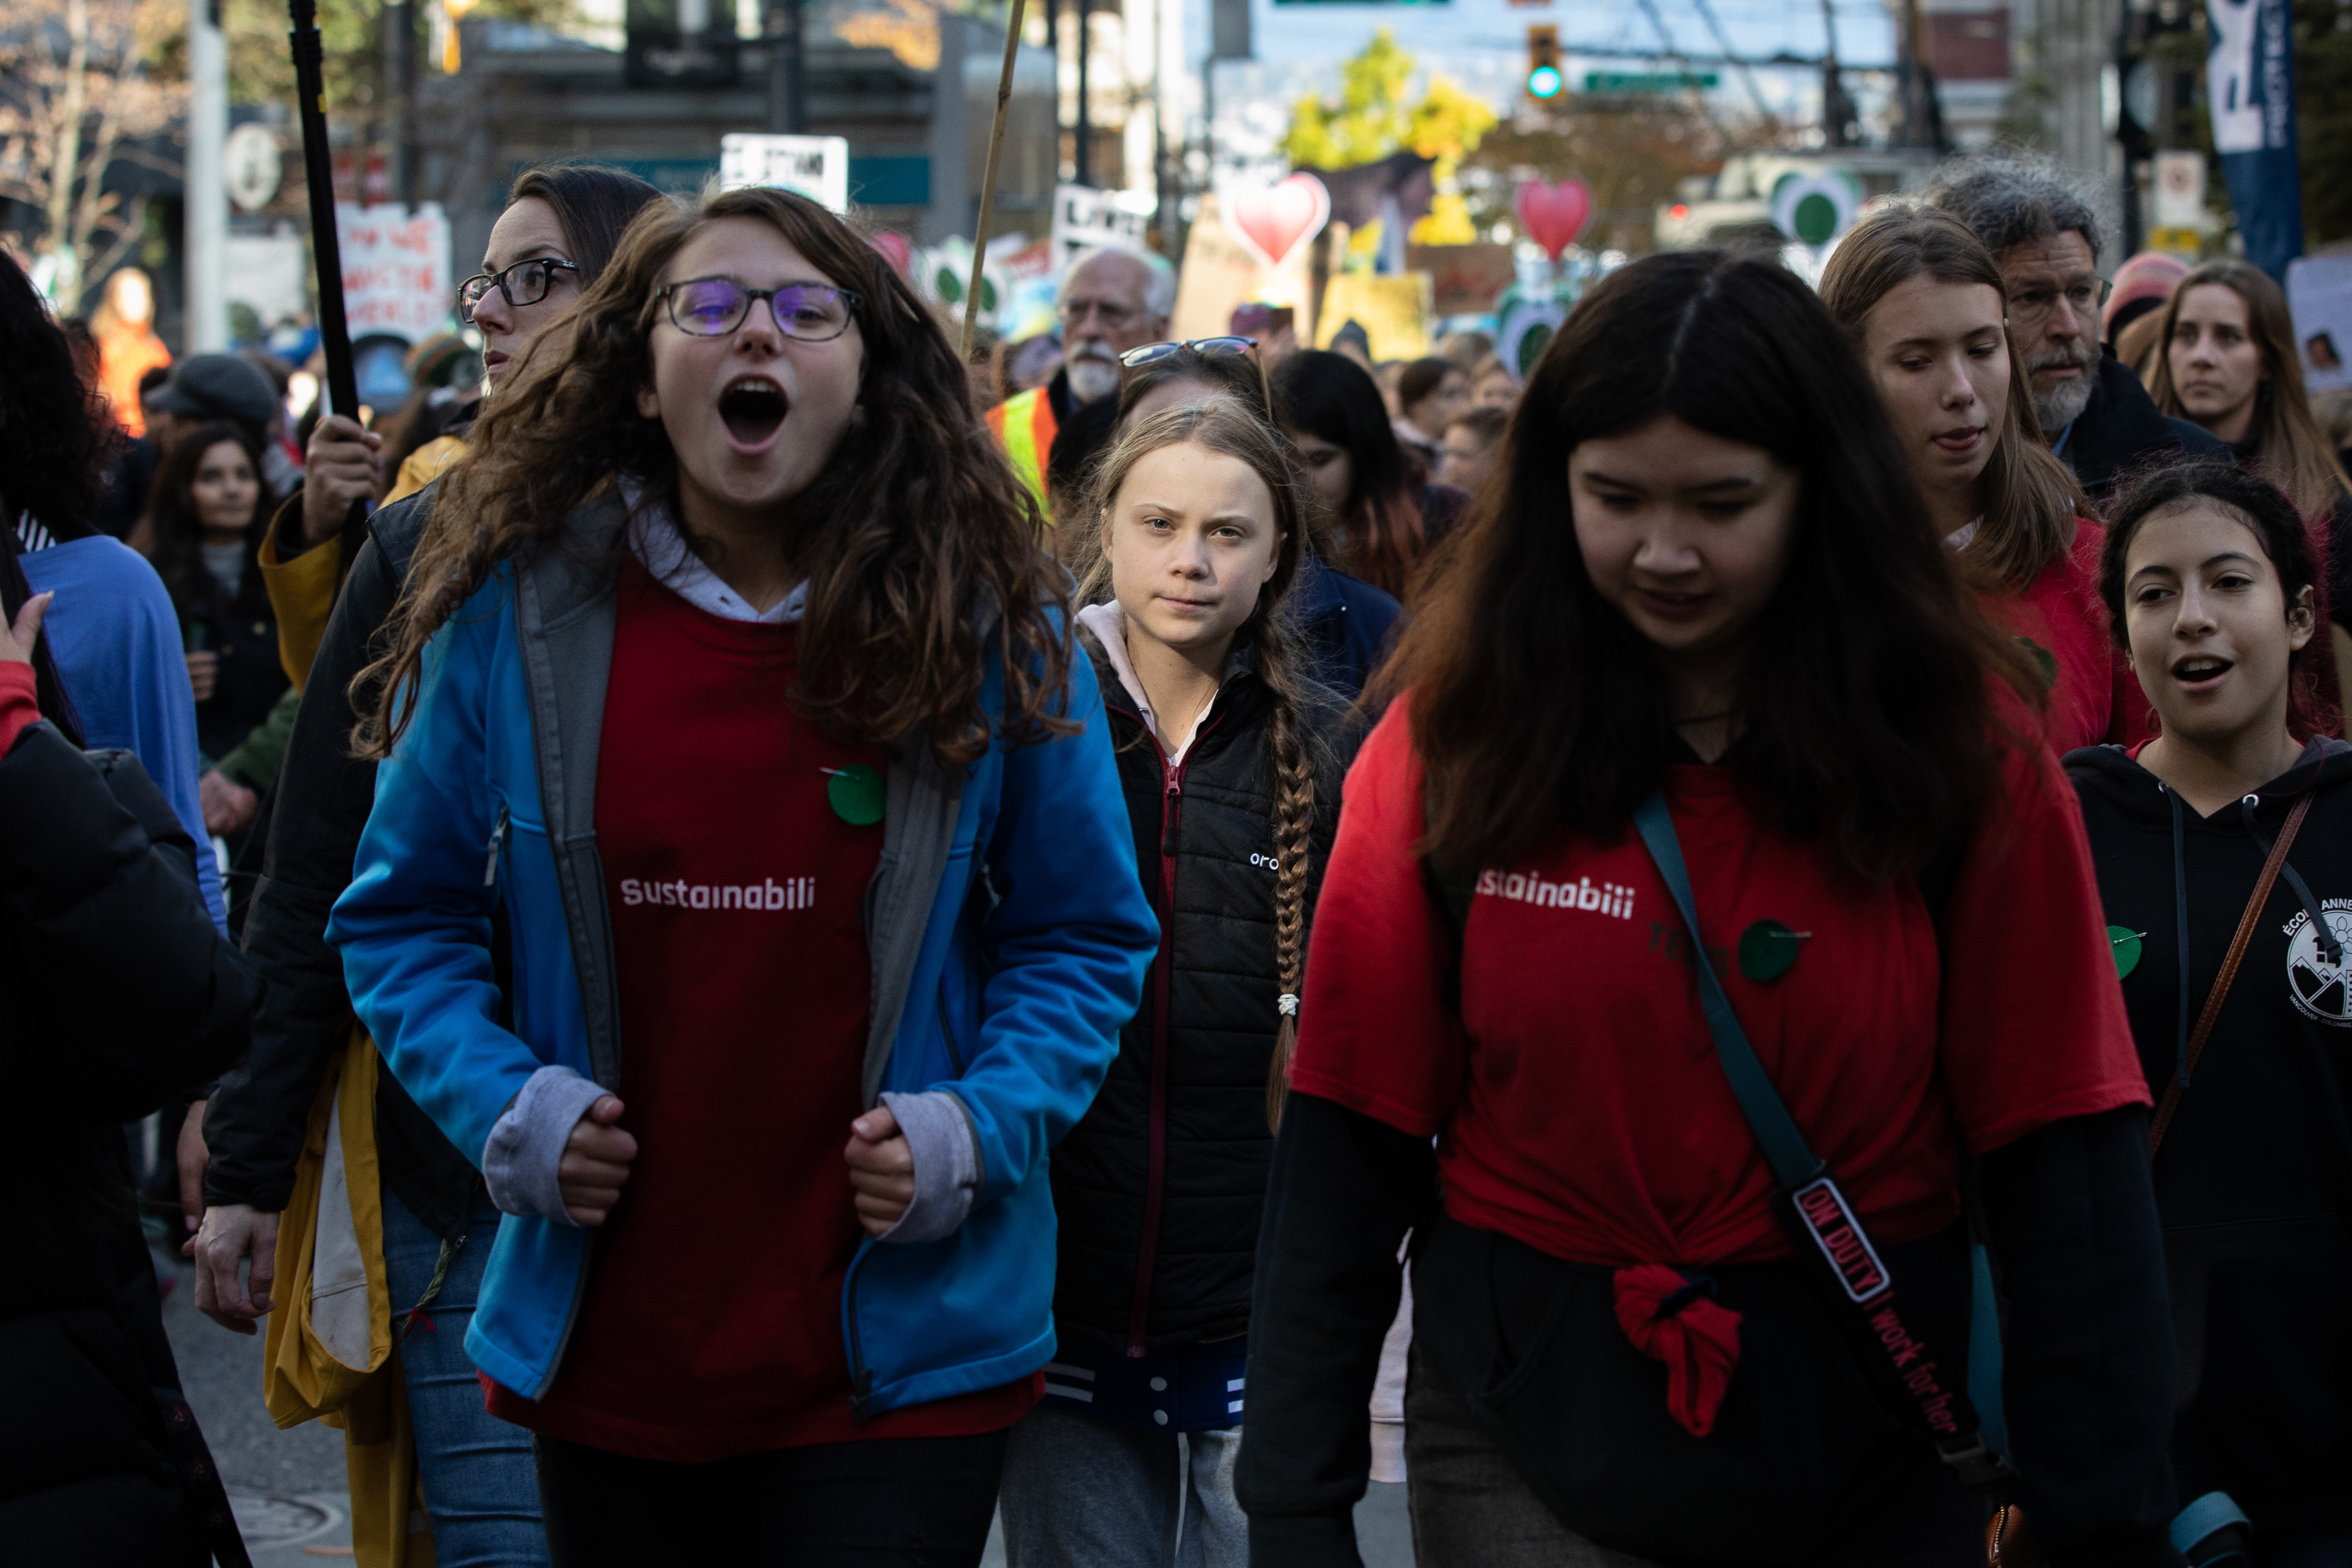 Greta Thunberg visits Vancouver for a climate strike on Friday, Oct. 25, 2019. (Maggie MacPherson/CBC)